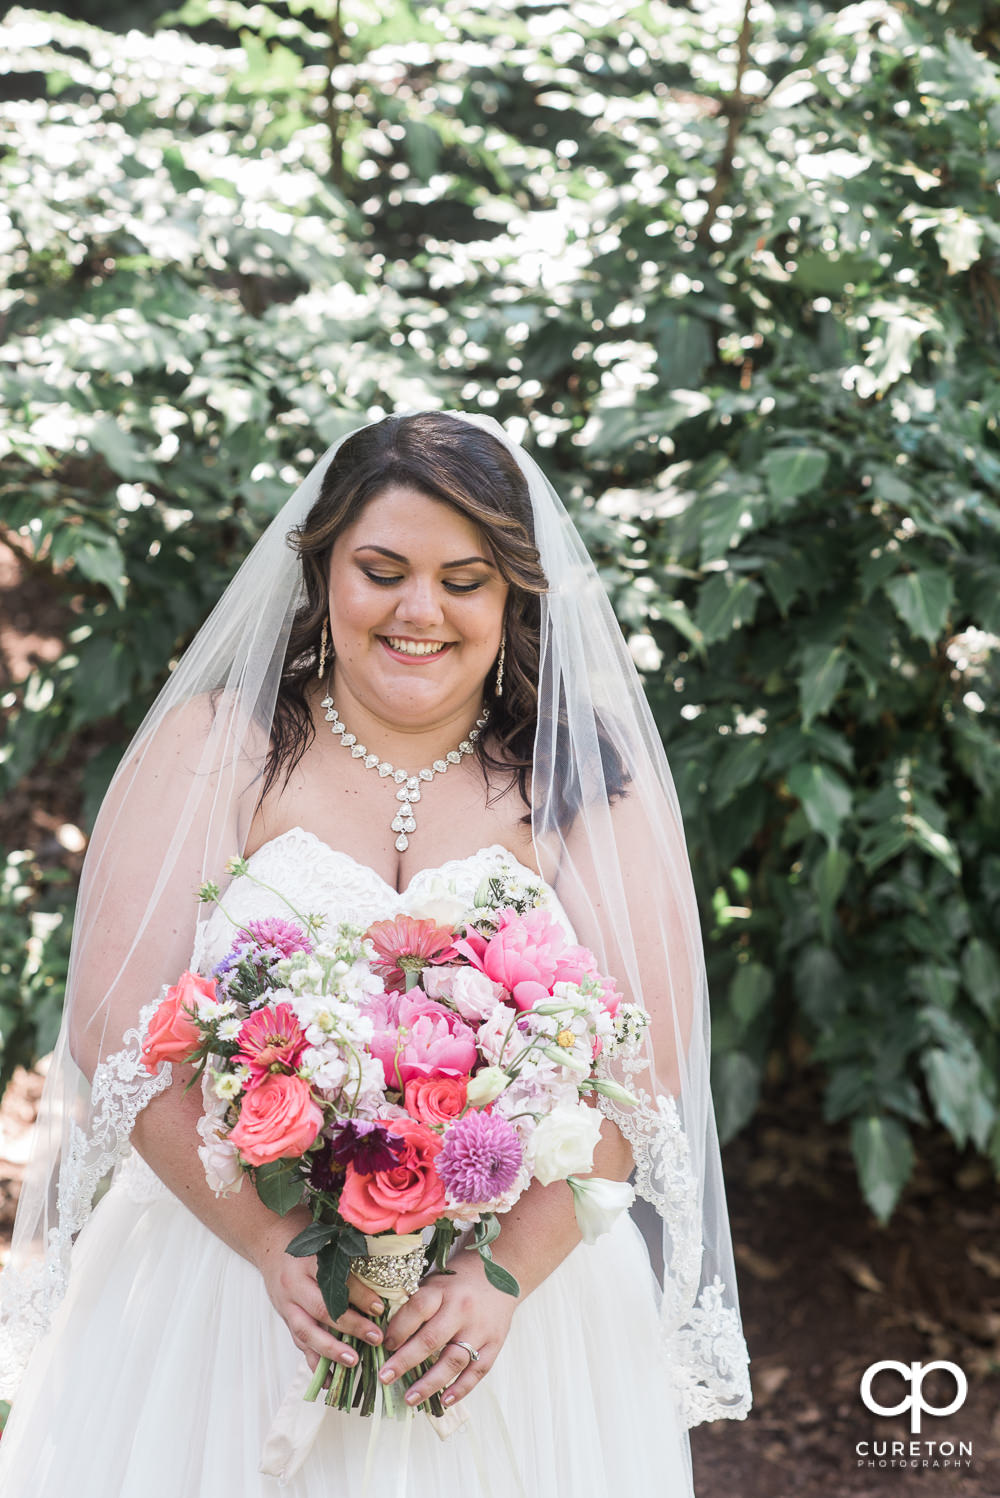 Bride with an amazing bouquet.